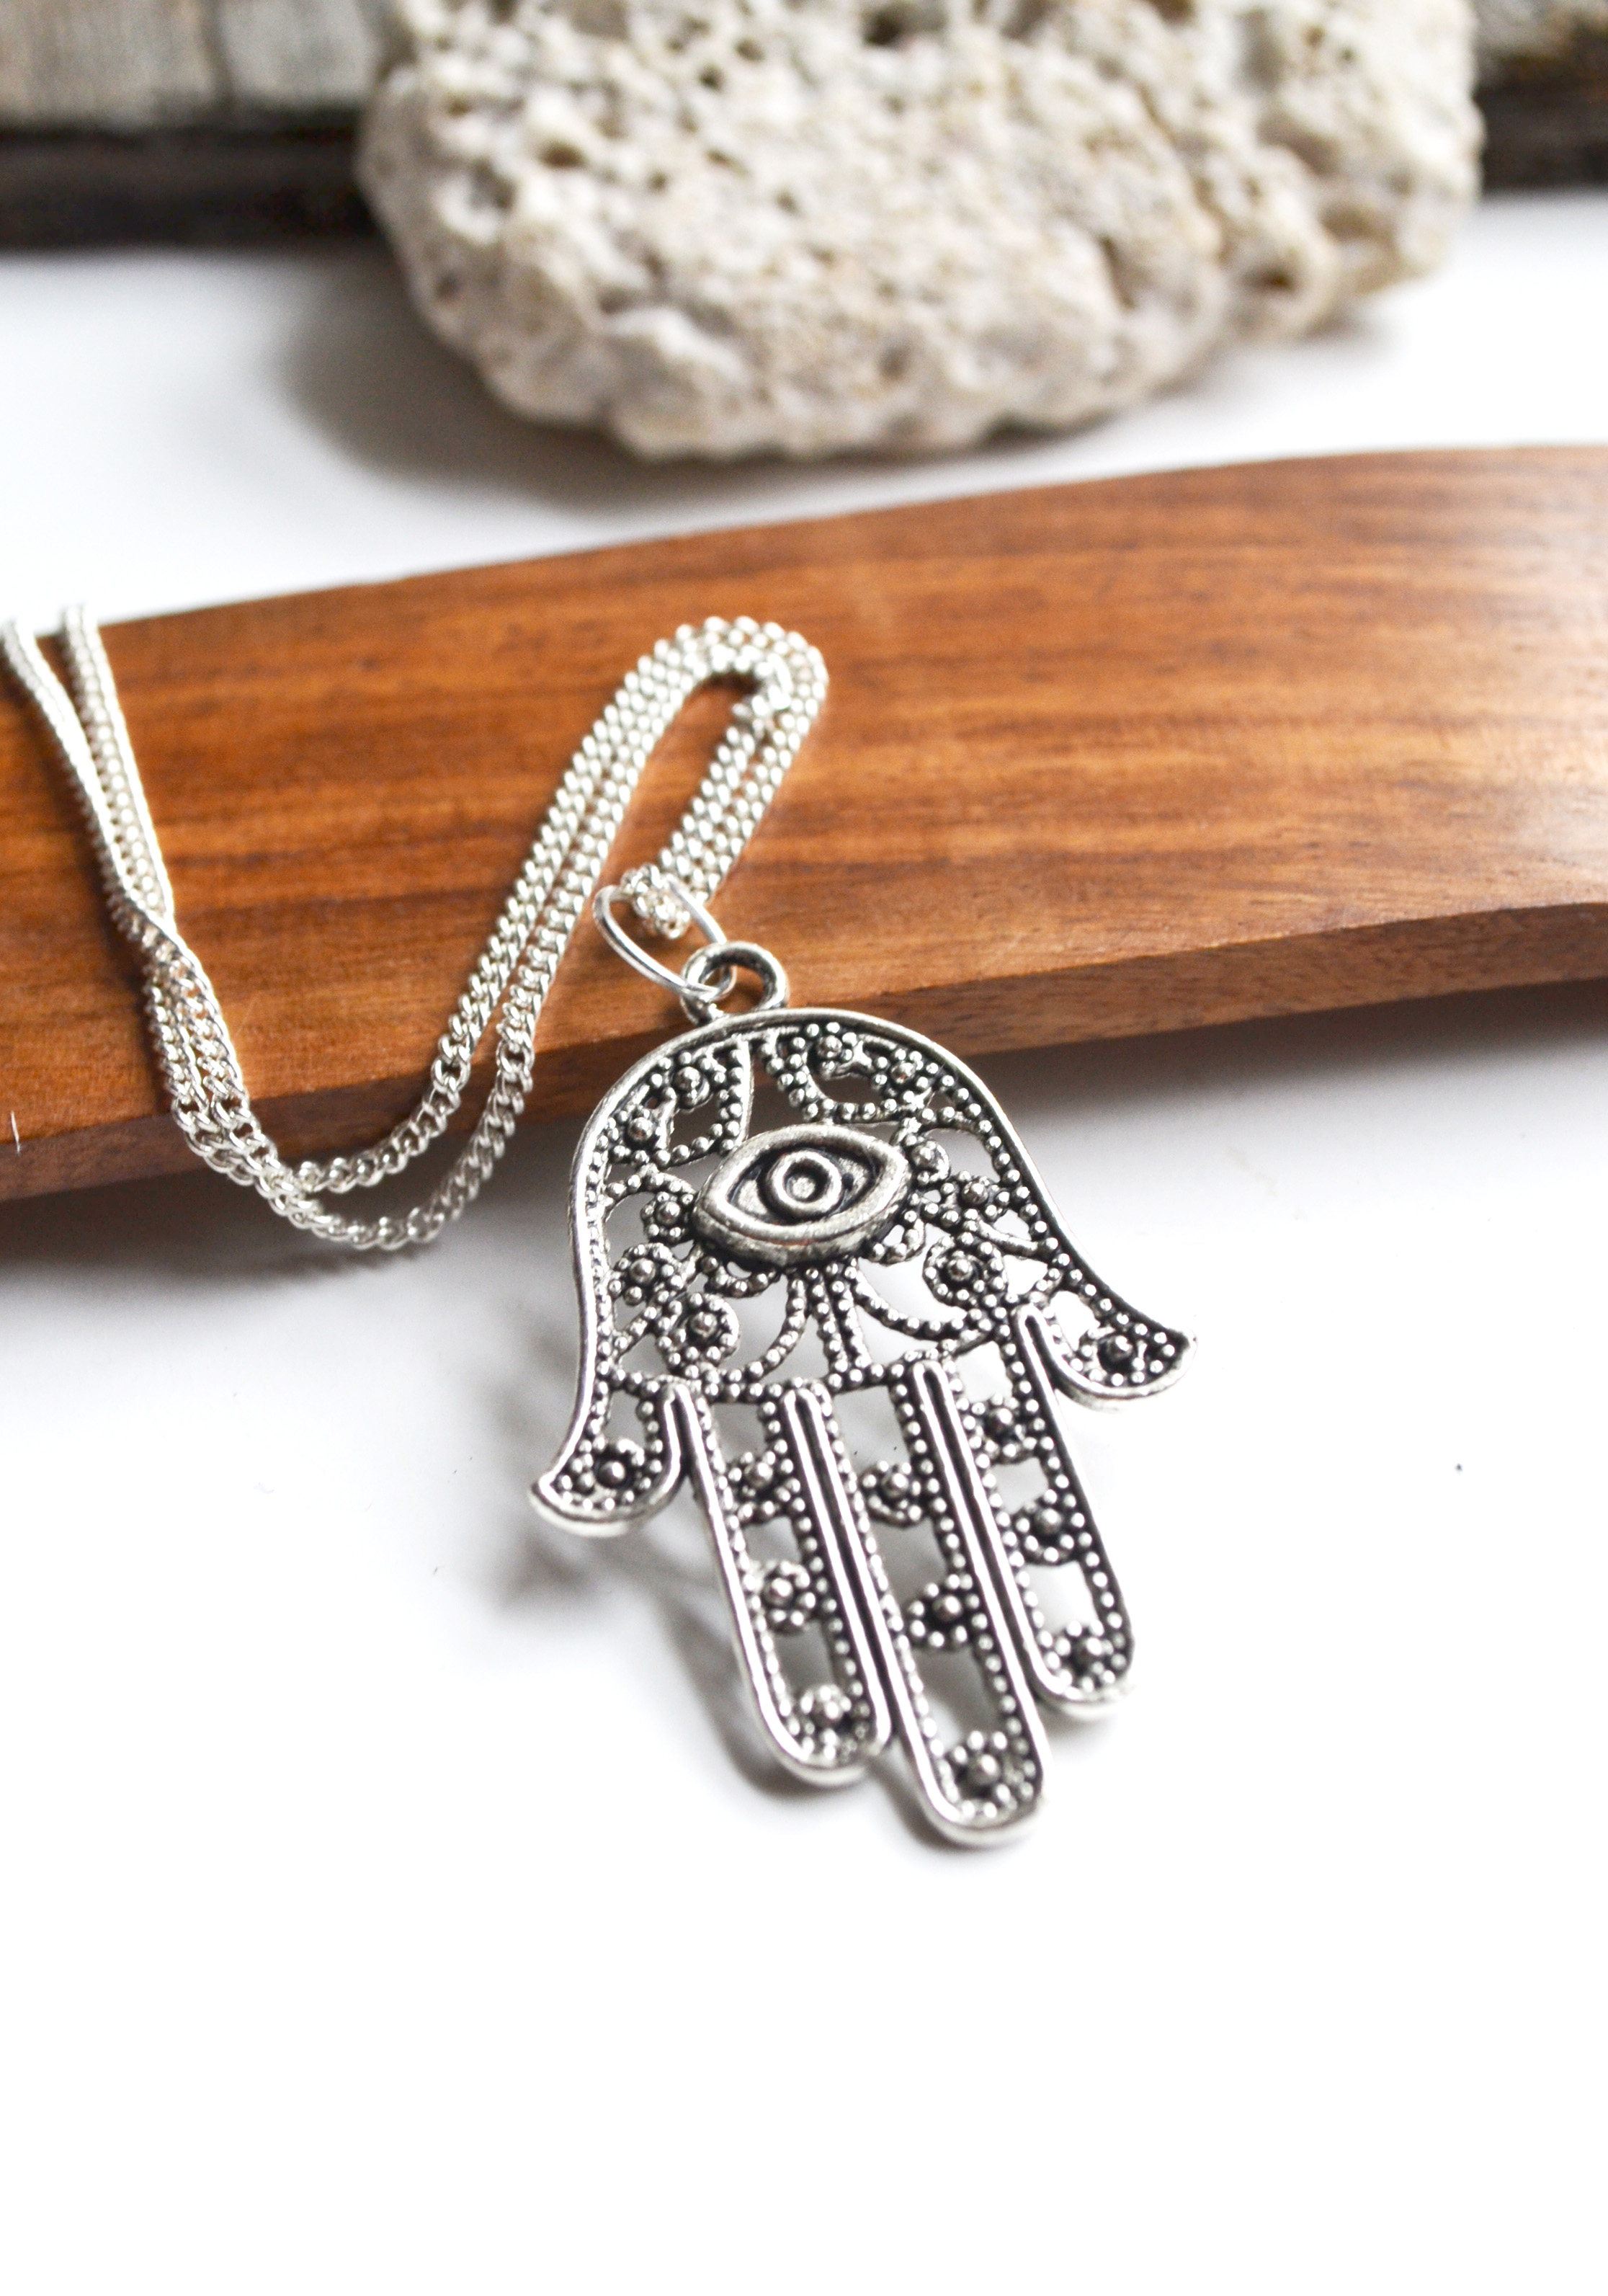 Hamsa hand necklace evil eye protection necklace hamsa jewelry hamsa hand necklace evil eye protection necklace hamsa jewelry evil eye jewelry aloadofball Image collections